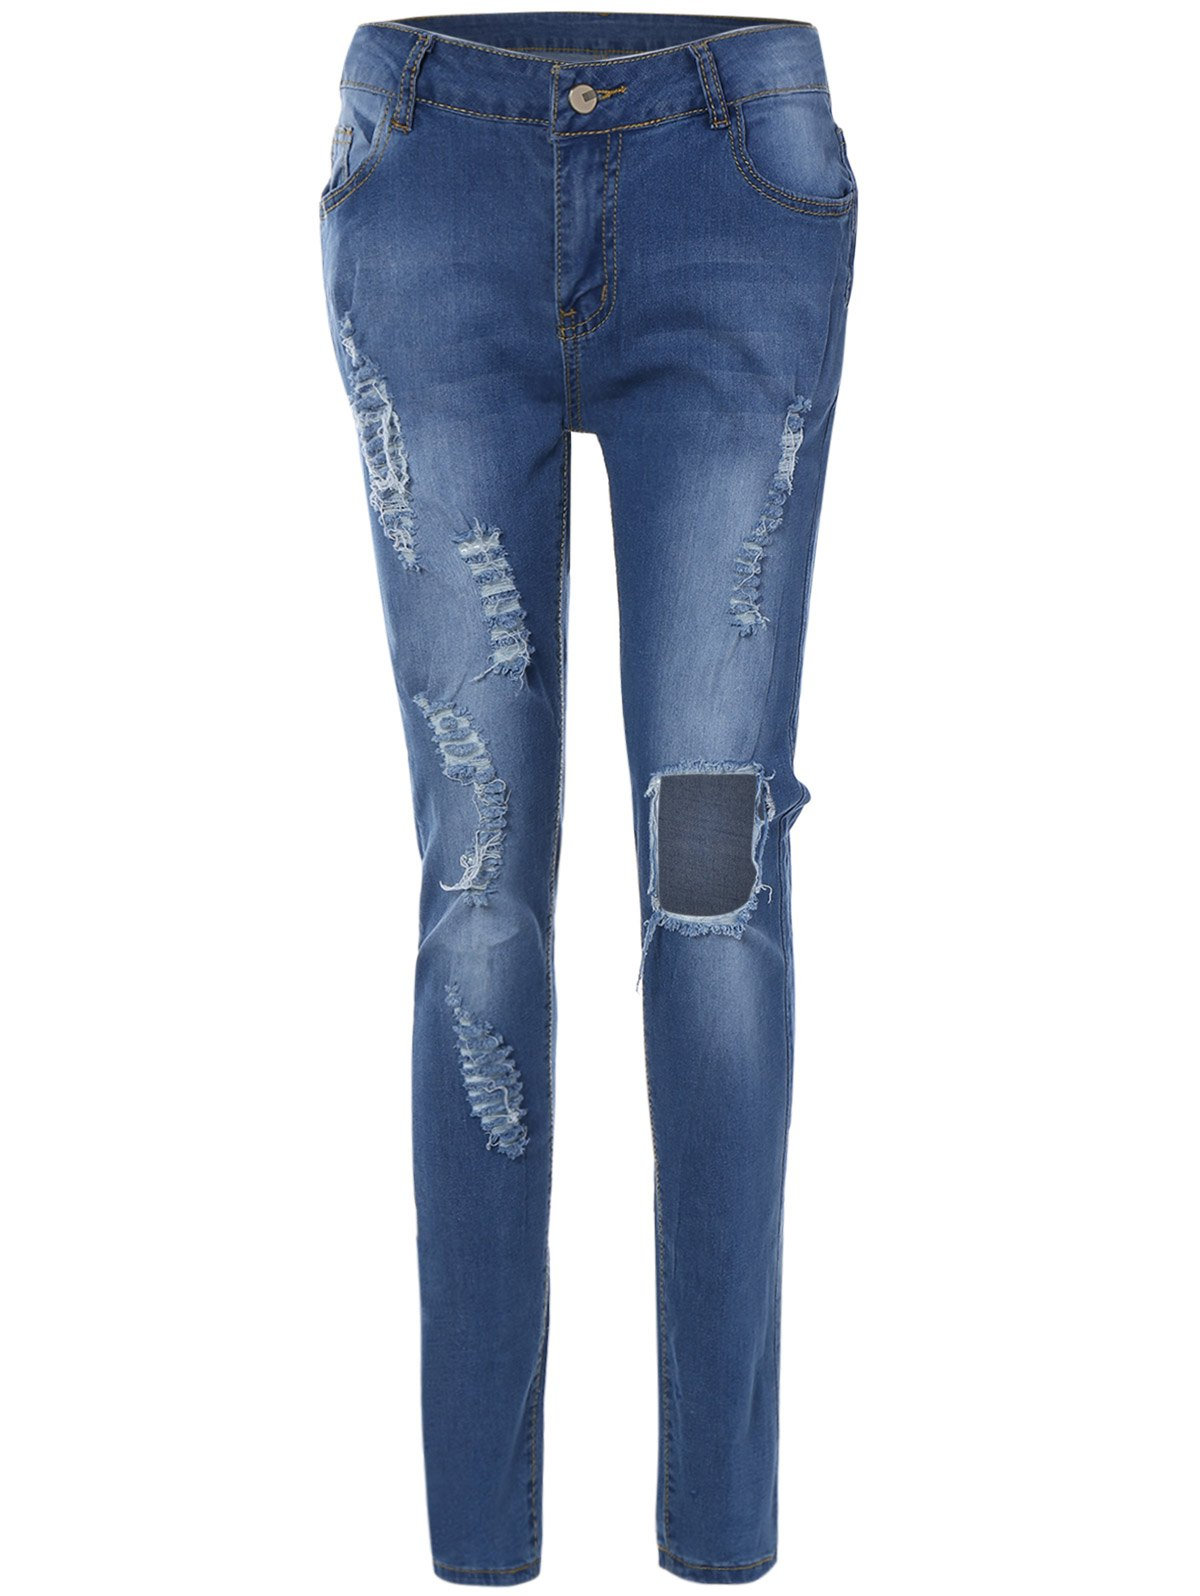 Patch Design Skinny Ripped Jeans With Pockets - BLUE S